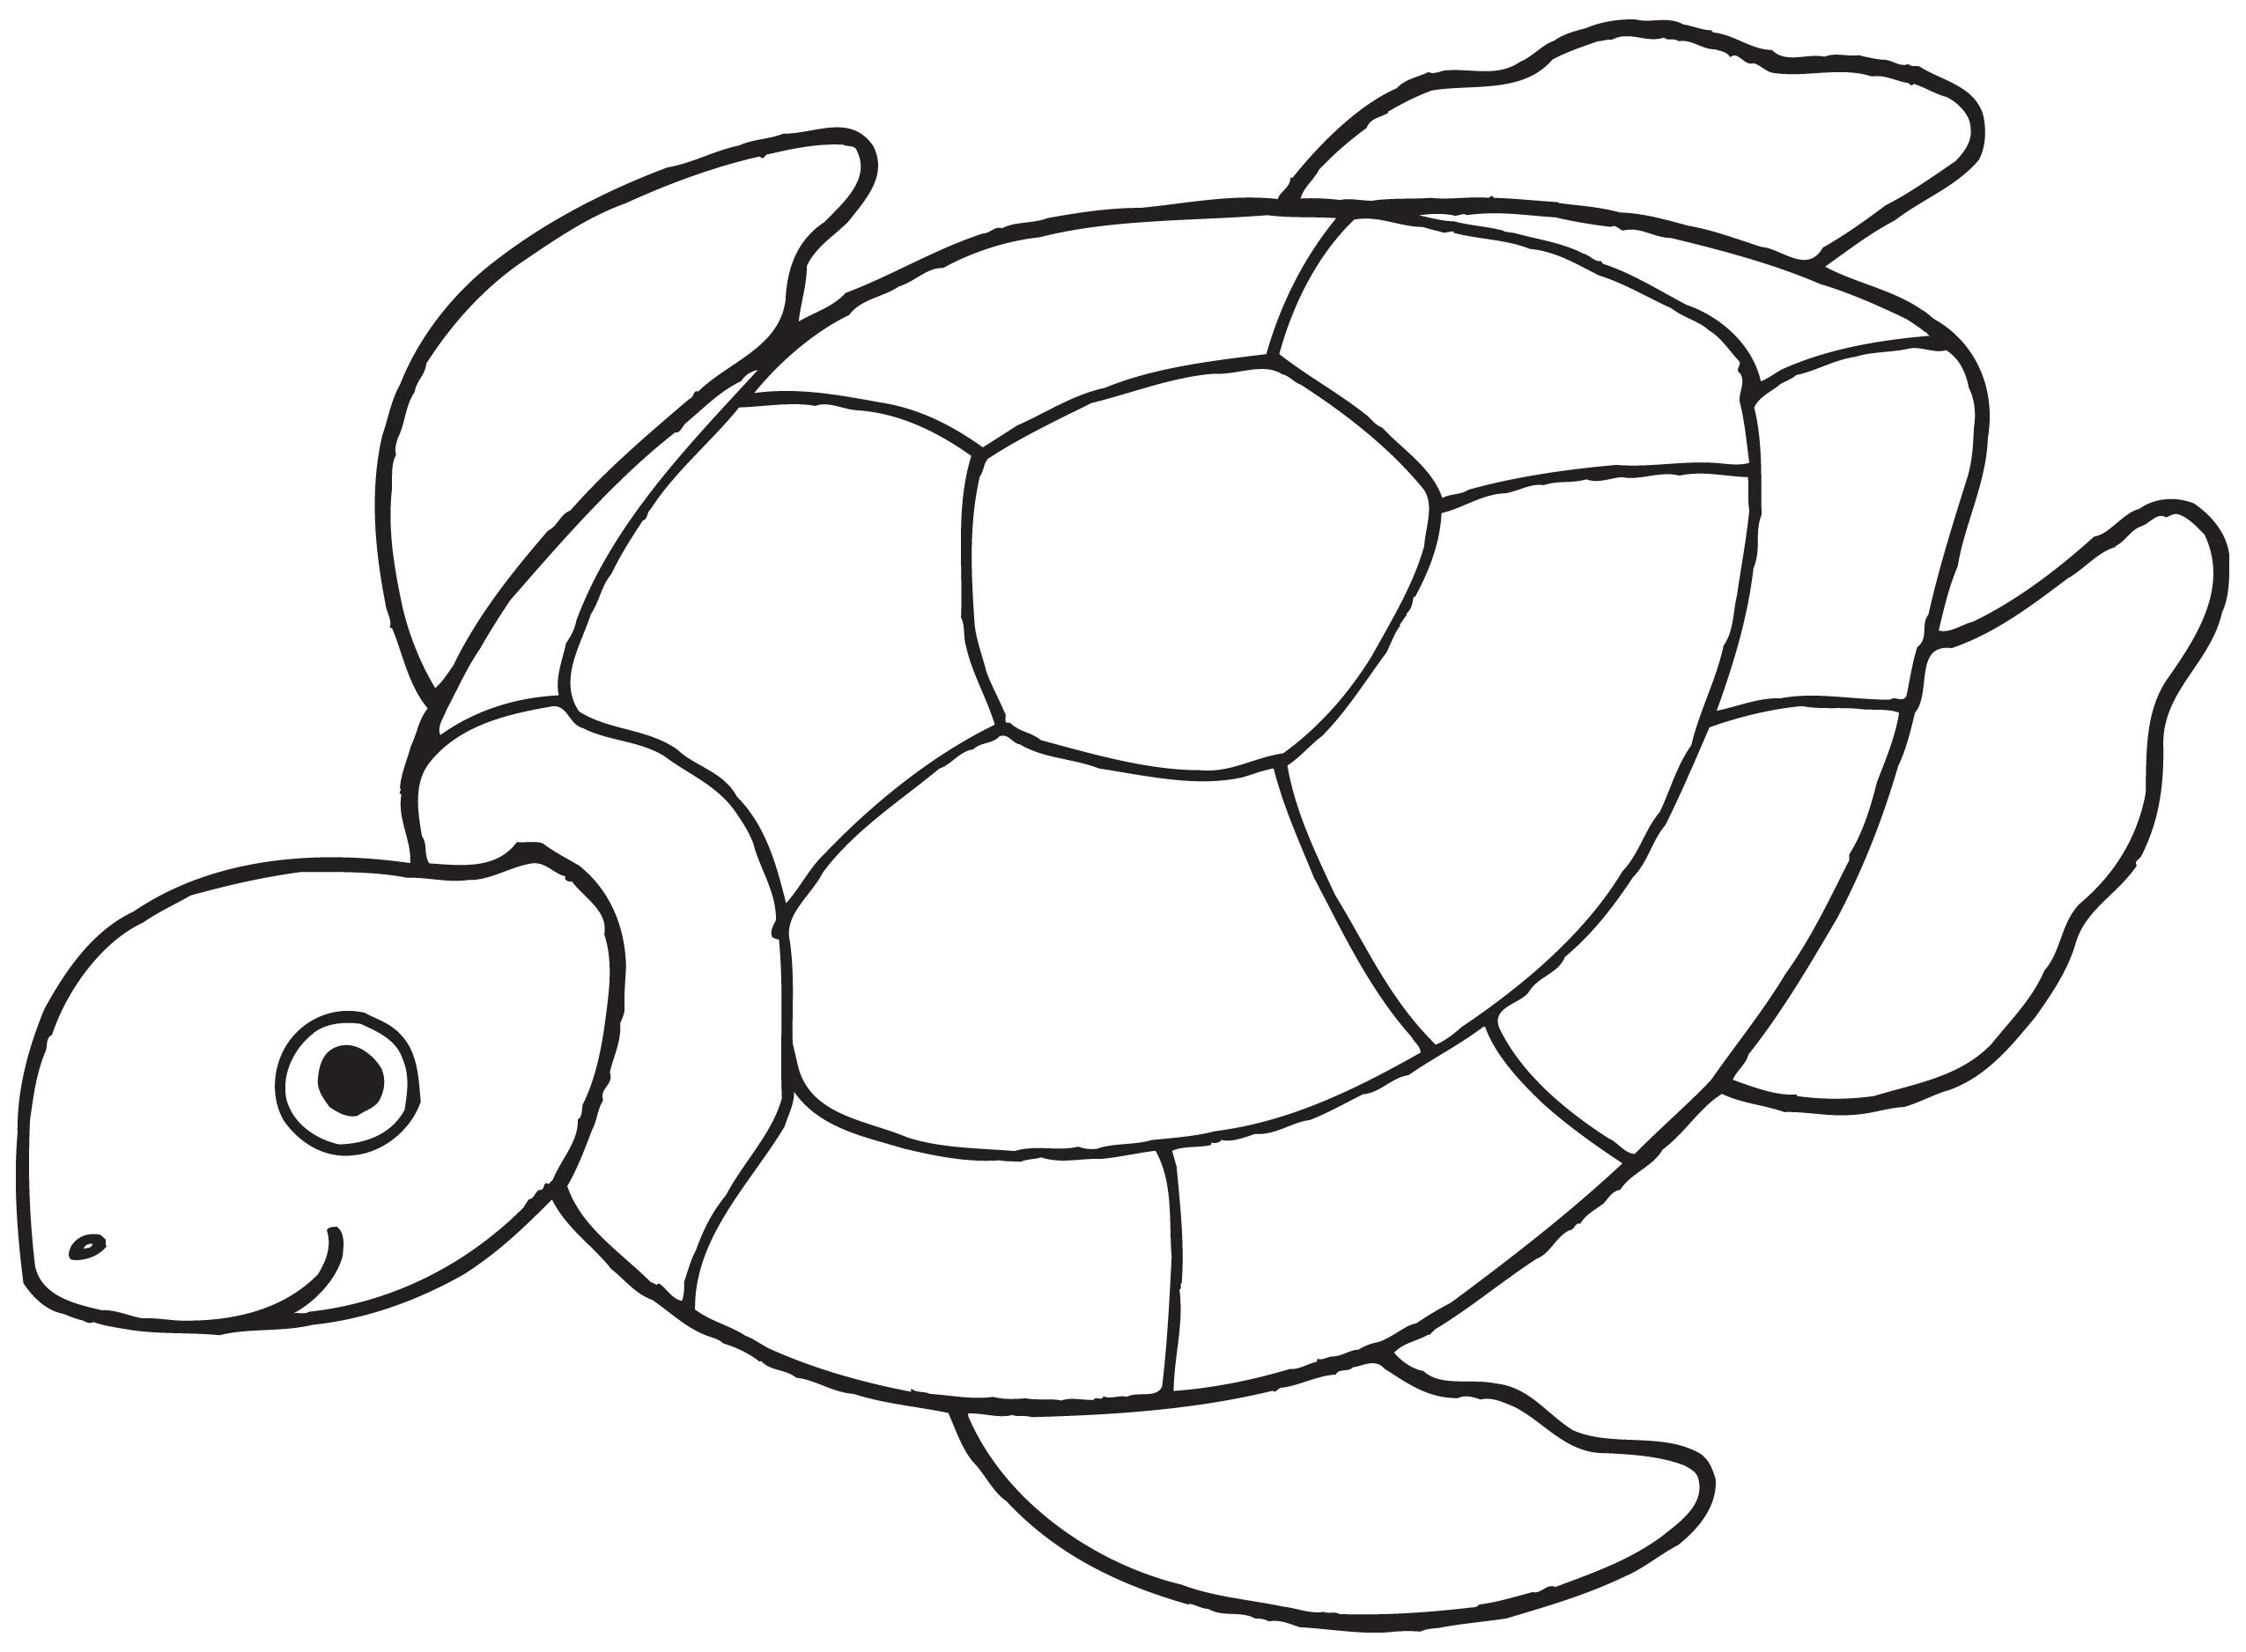 Turtle Clip Art Black And White | Clipart Panda - Free ...